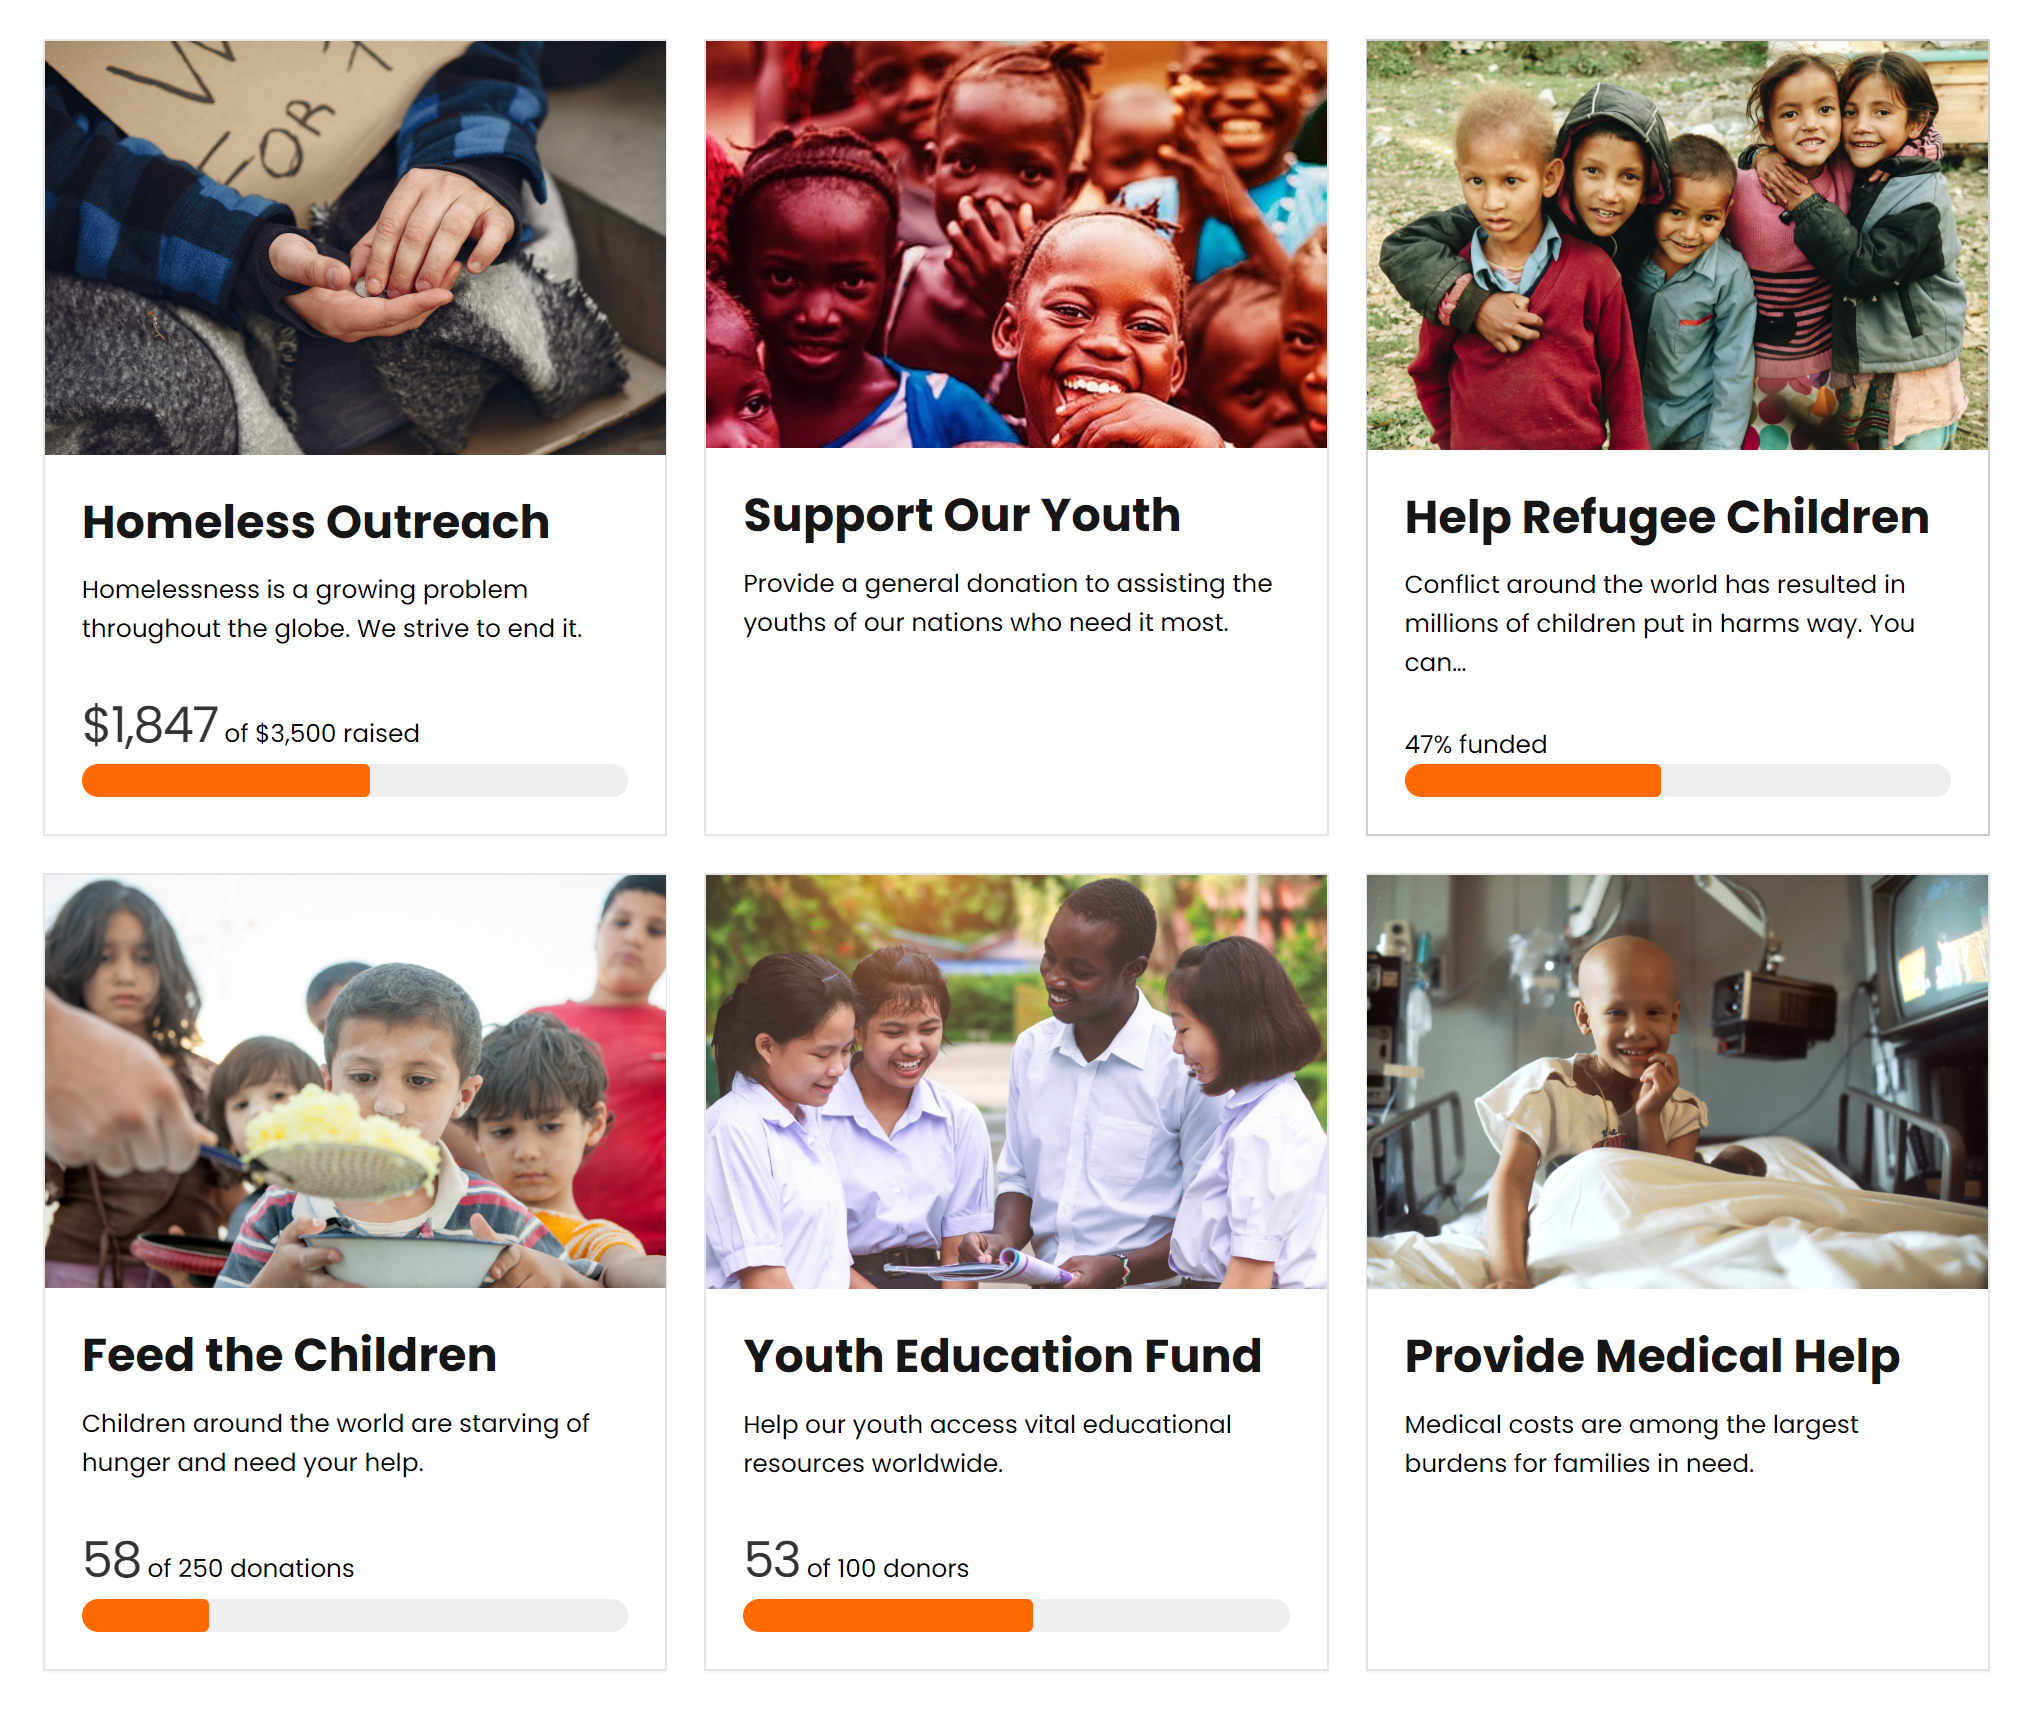 Each piece of the form grid funds a different program and has its own fundraising progress goal bar.